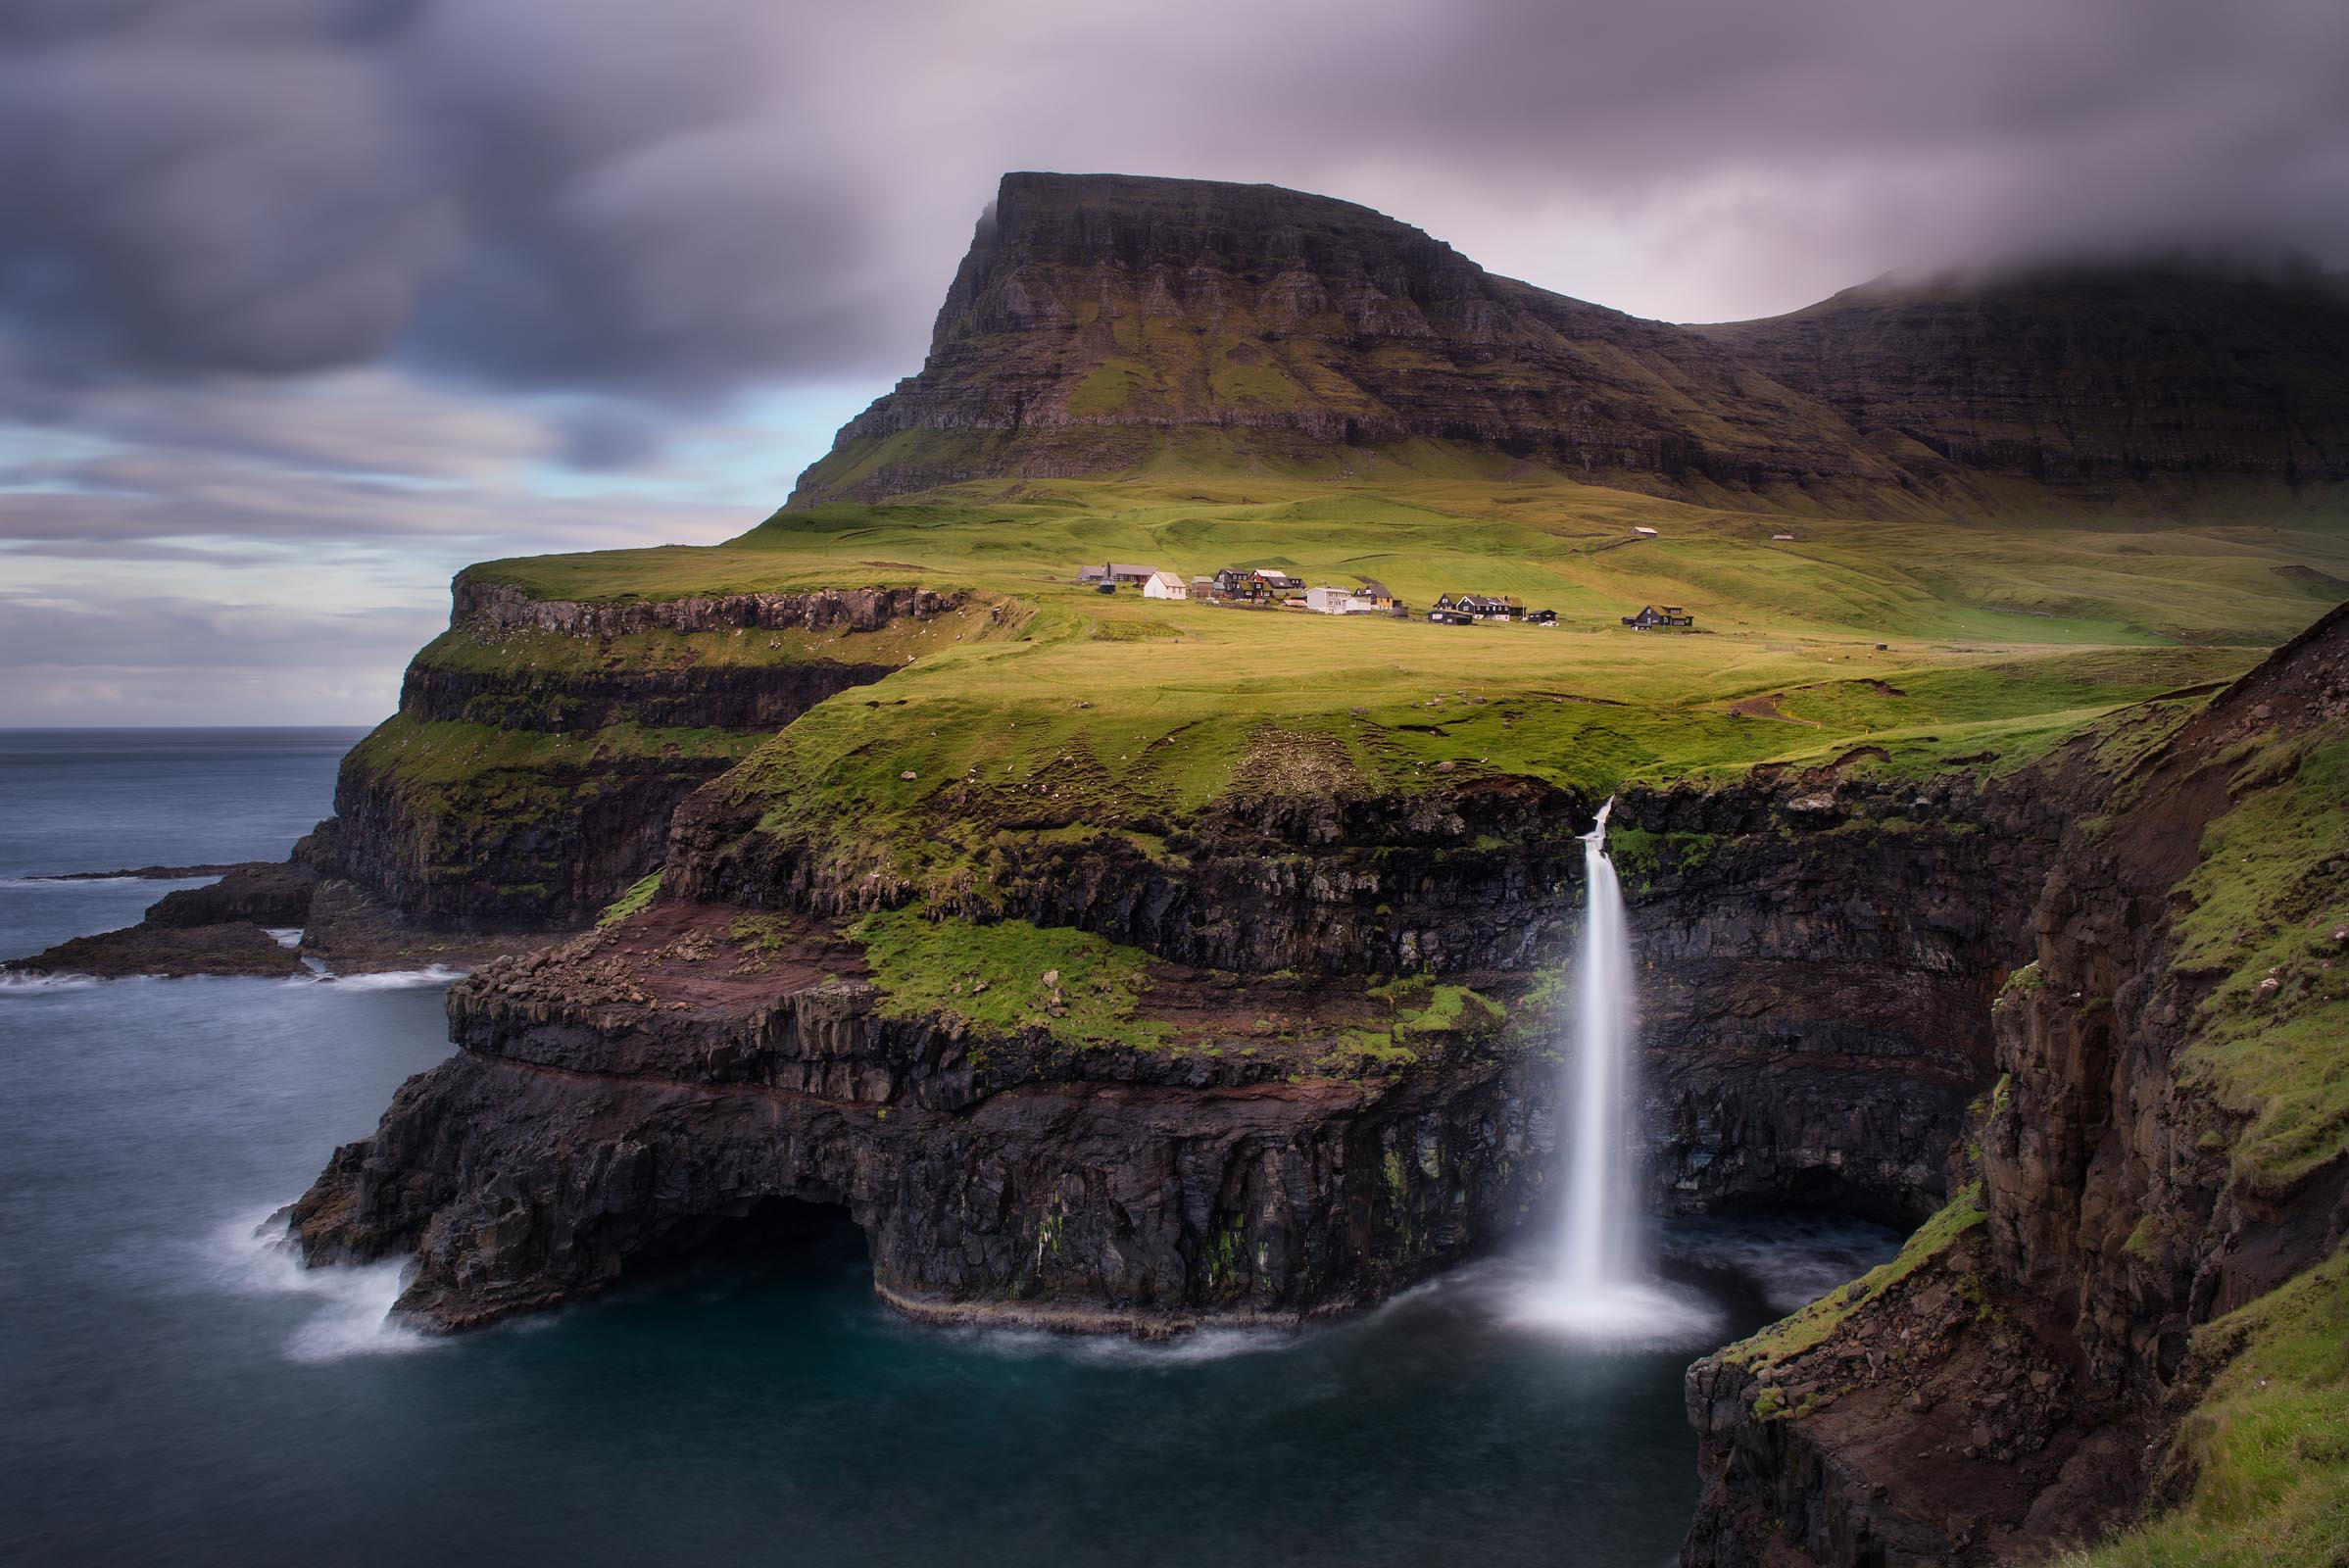 Photograph of Mulafossur Waterfall in Gasadalur, Faroe Islands by Brent Goldman Photography